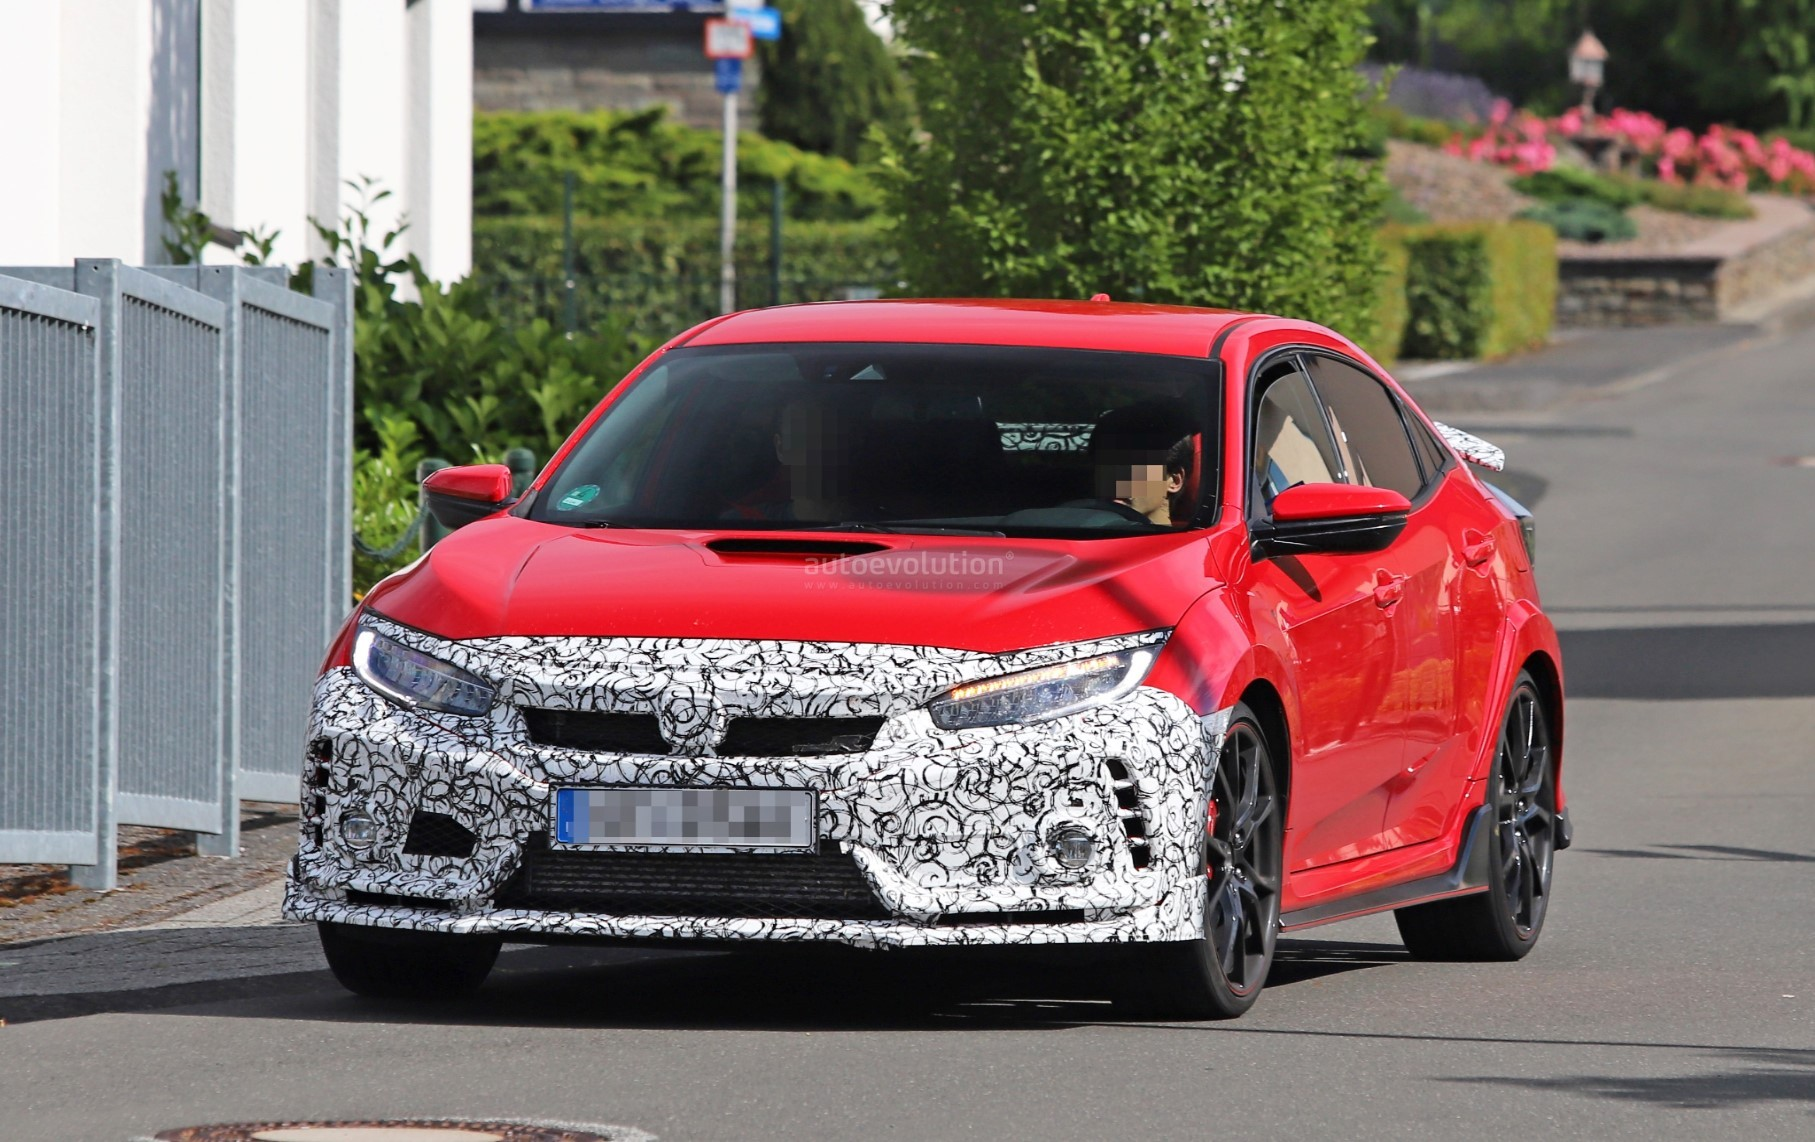 2019 Honda Civic Type R Spied In Red Differs From White Painted